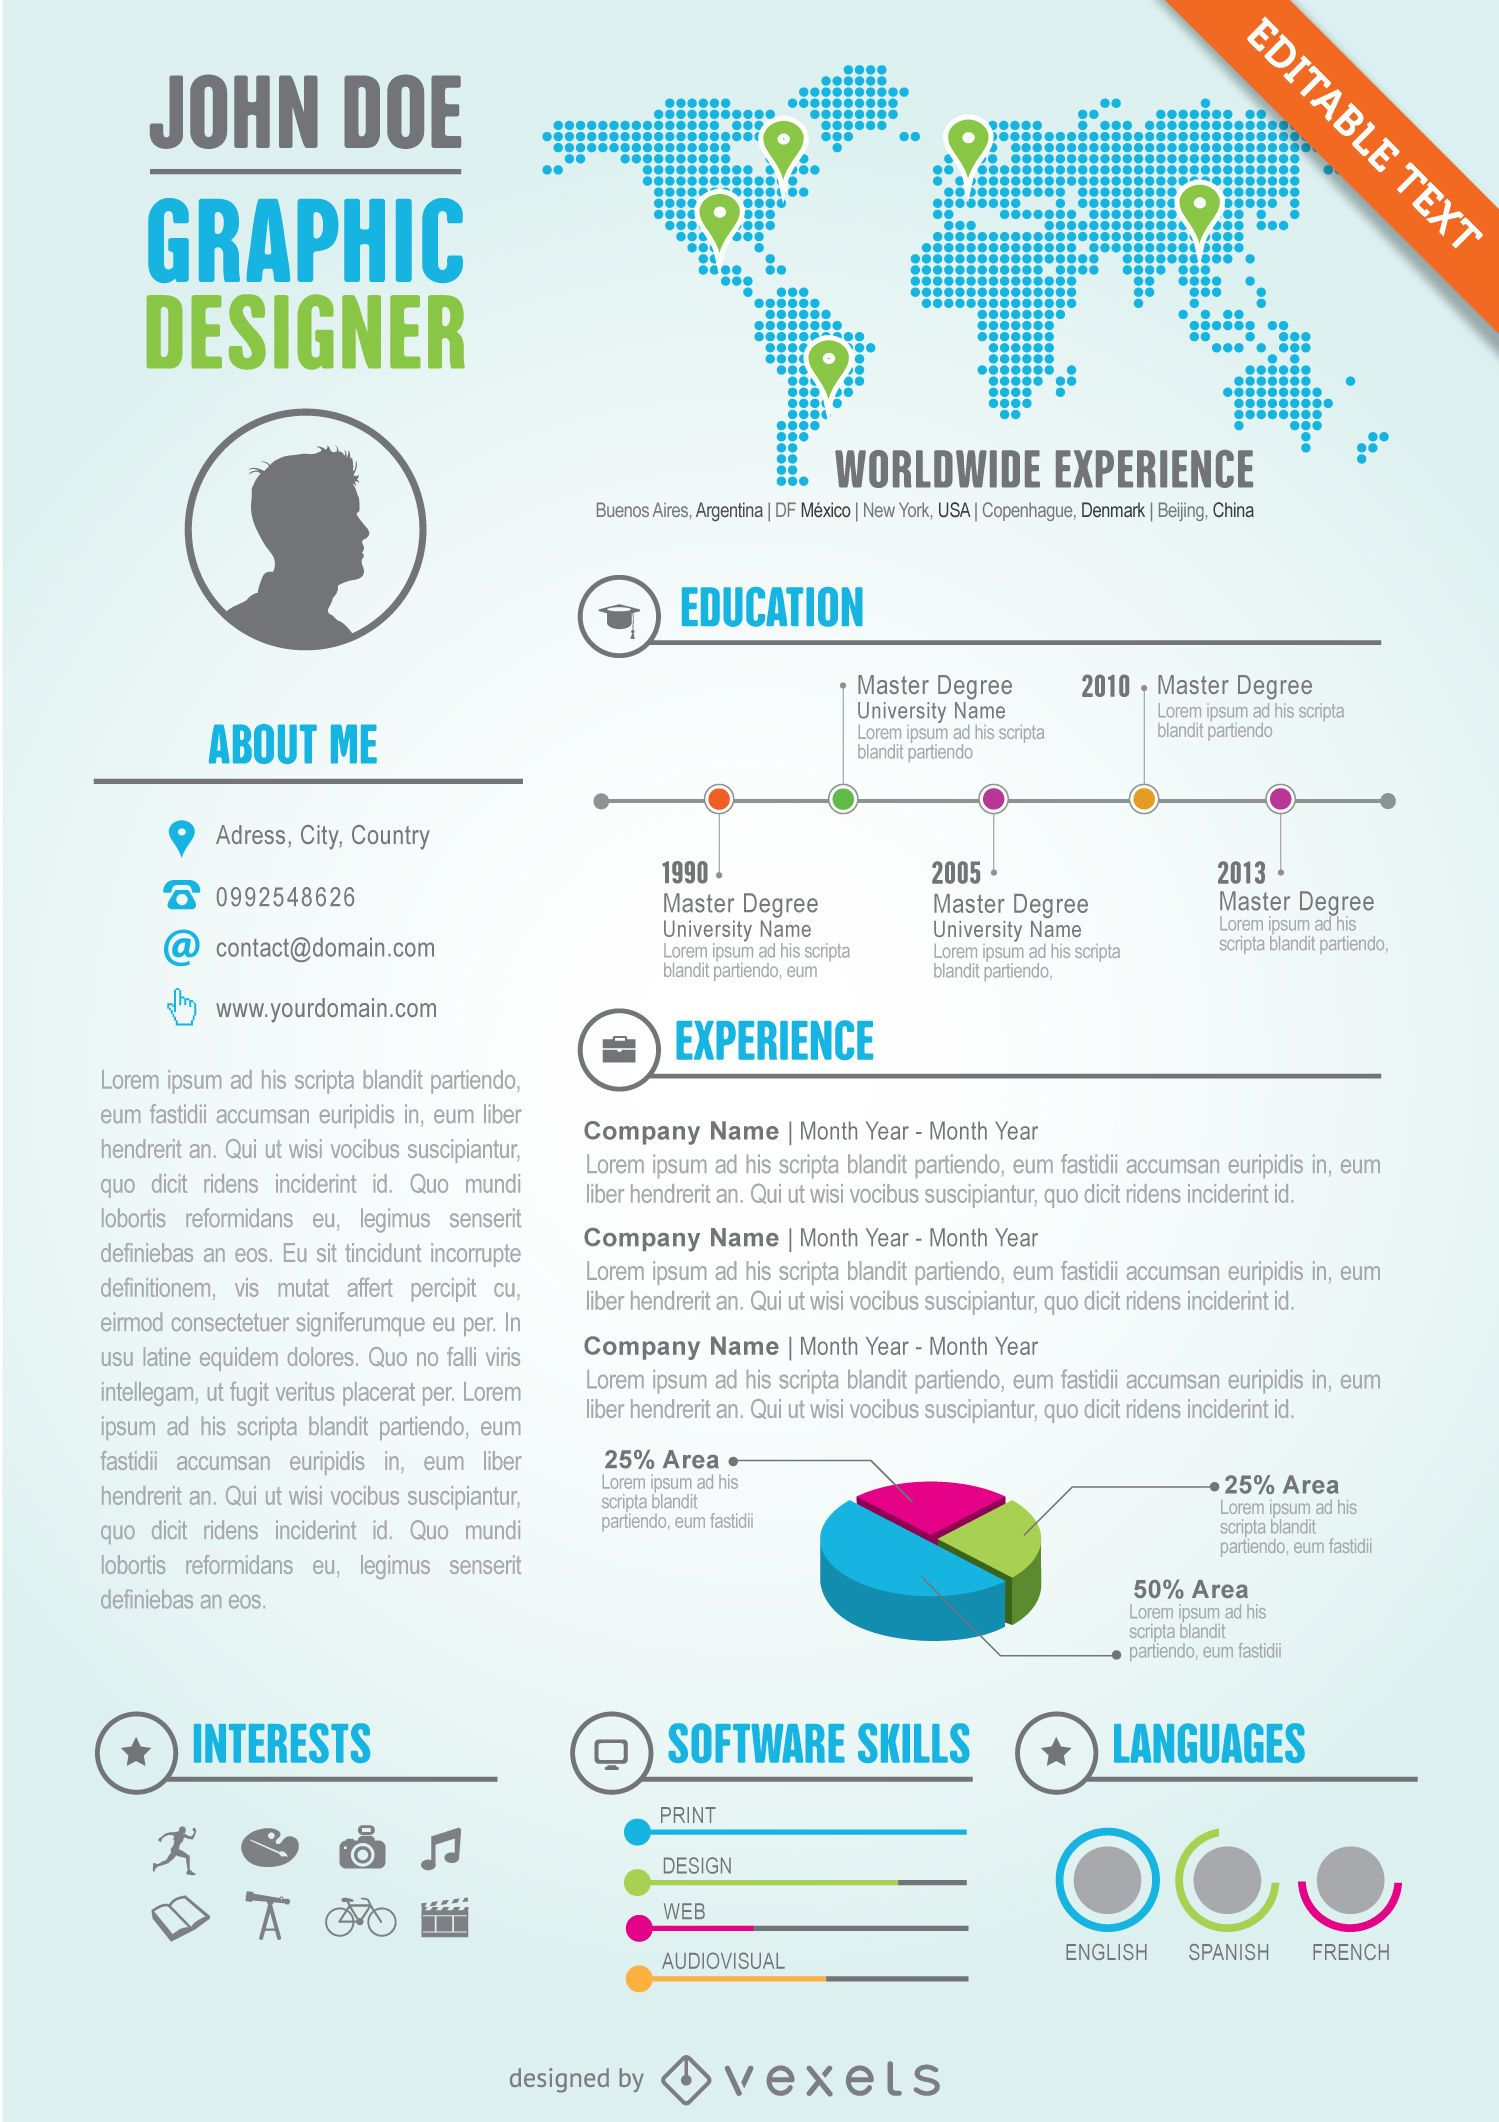 Graphic designer editable resume cv template vector download image user yelopaper Gallery